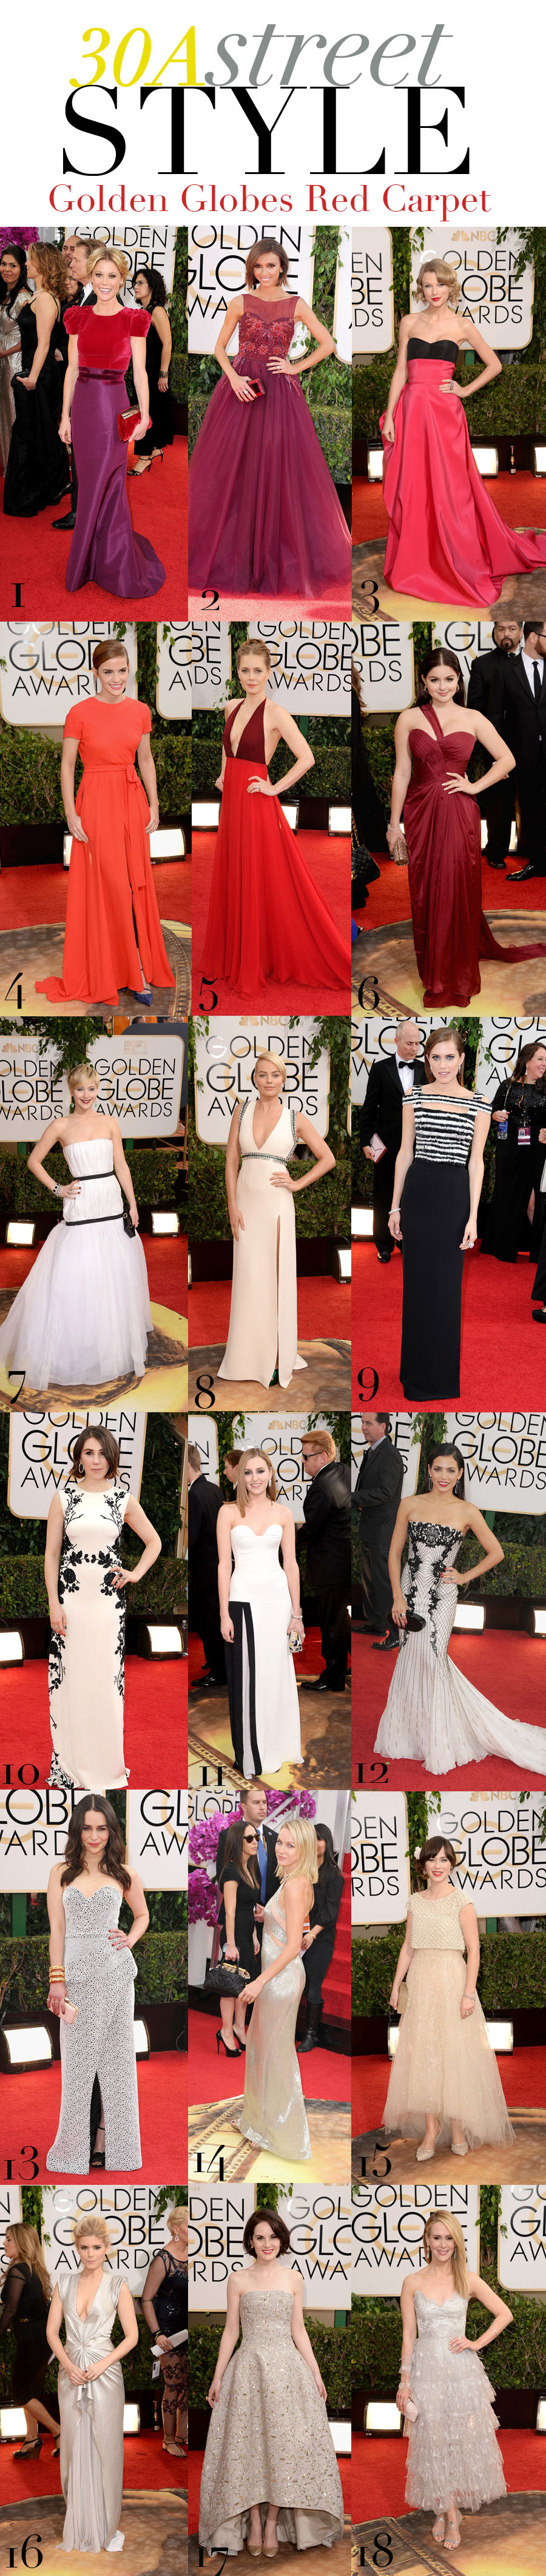 Red Carpet Recap - Golden Globes 2014